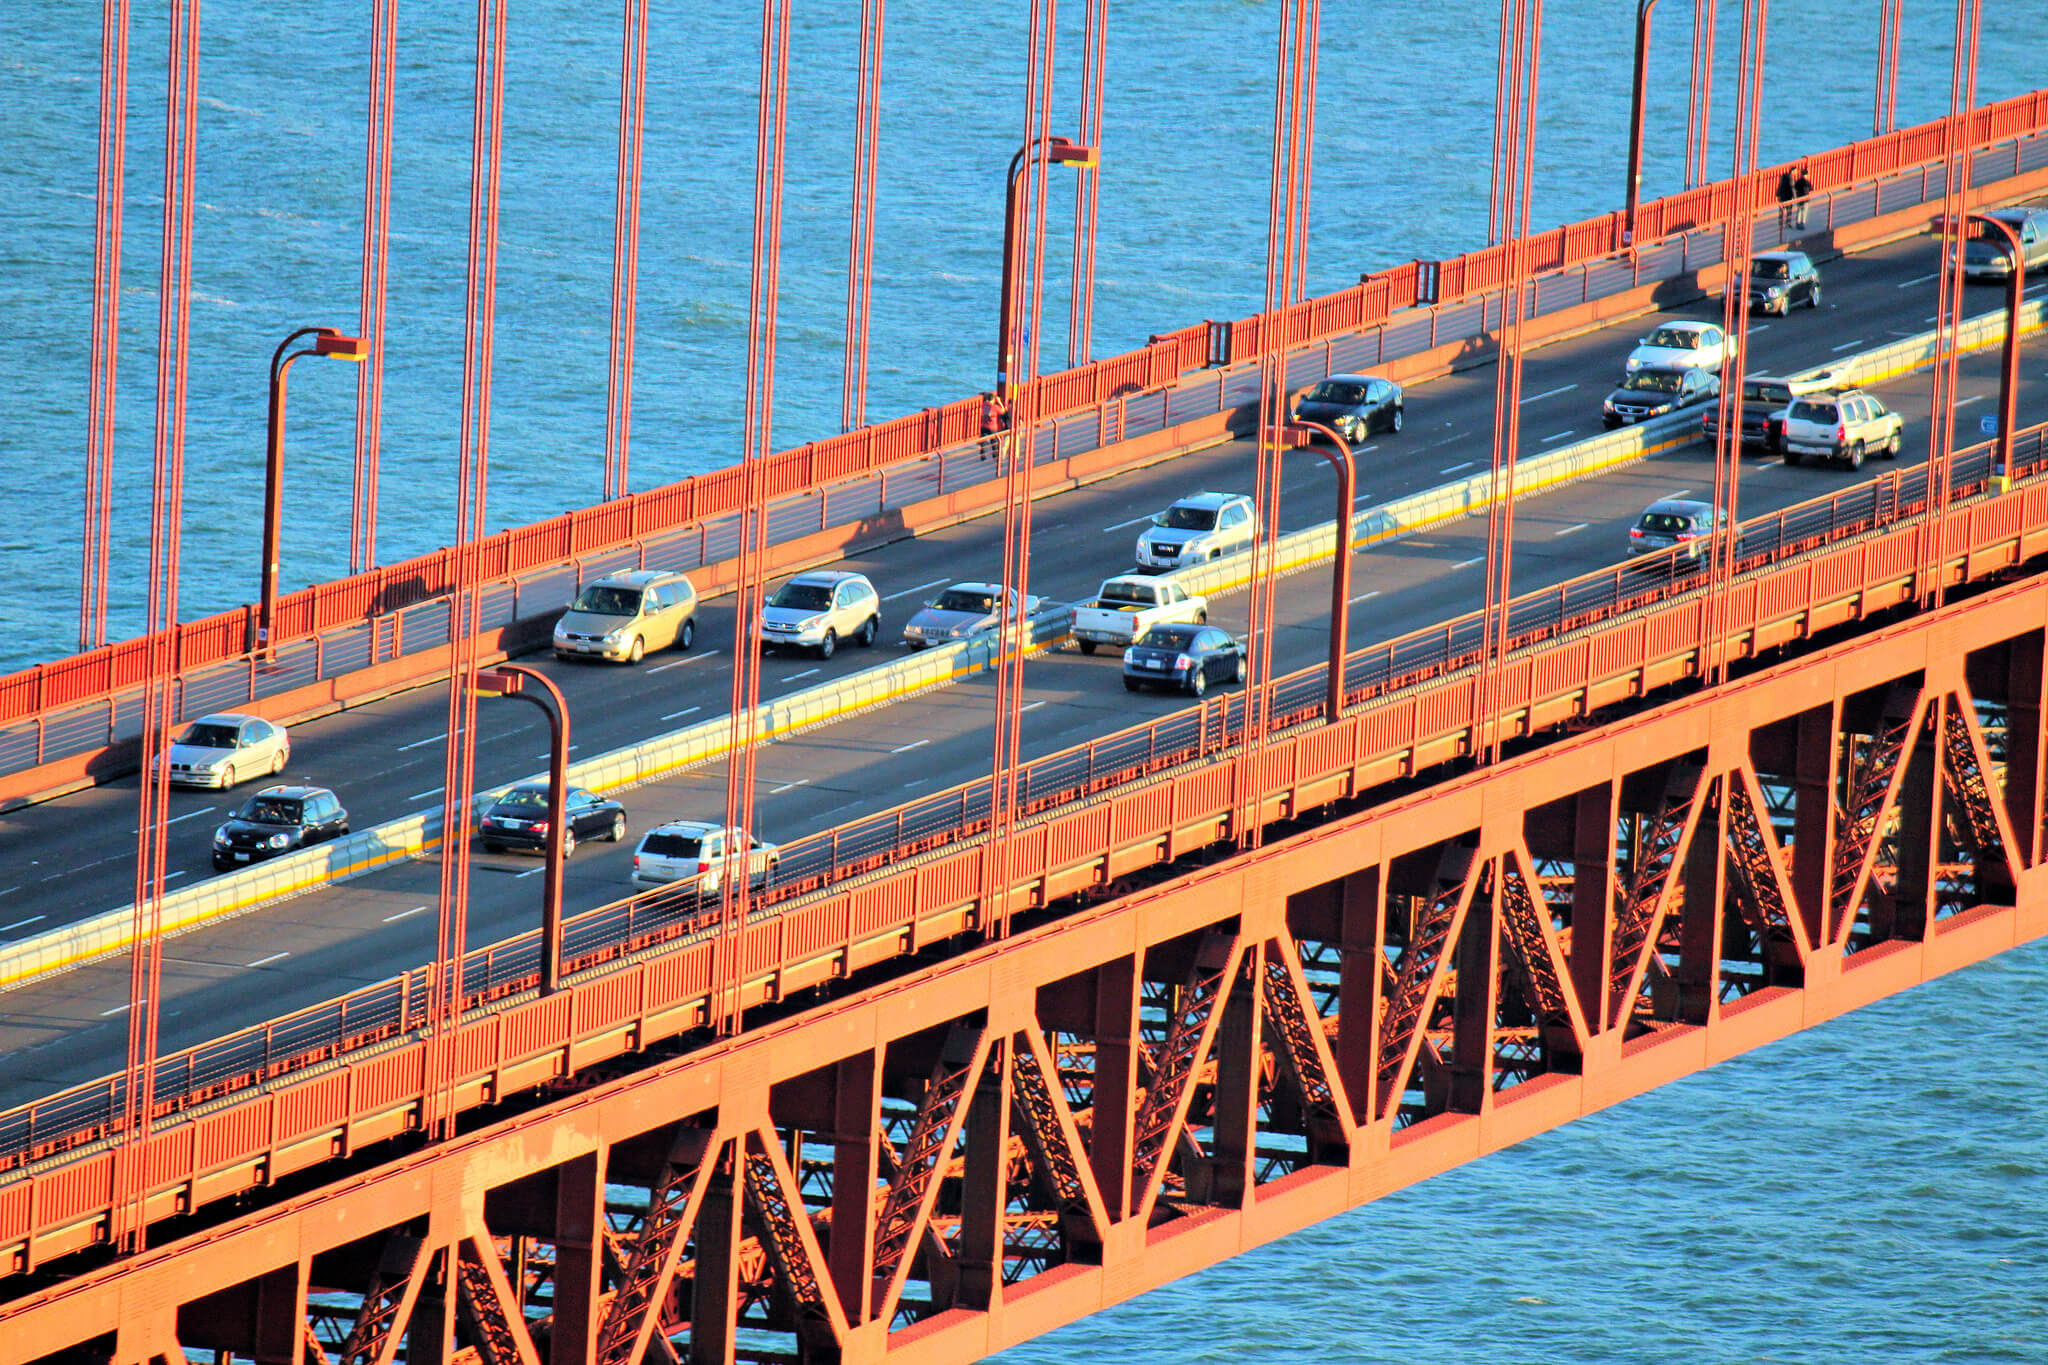 Golden Gate Bridge lanes